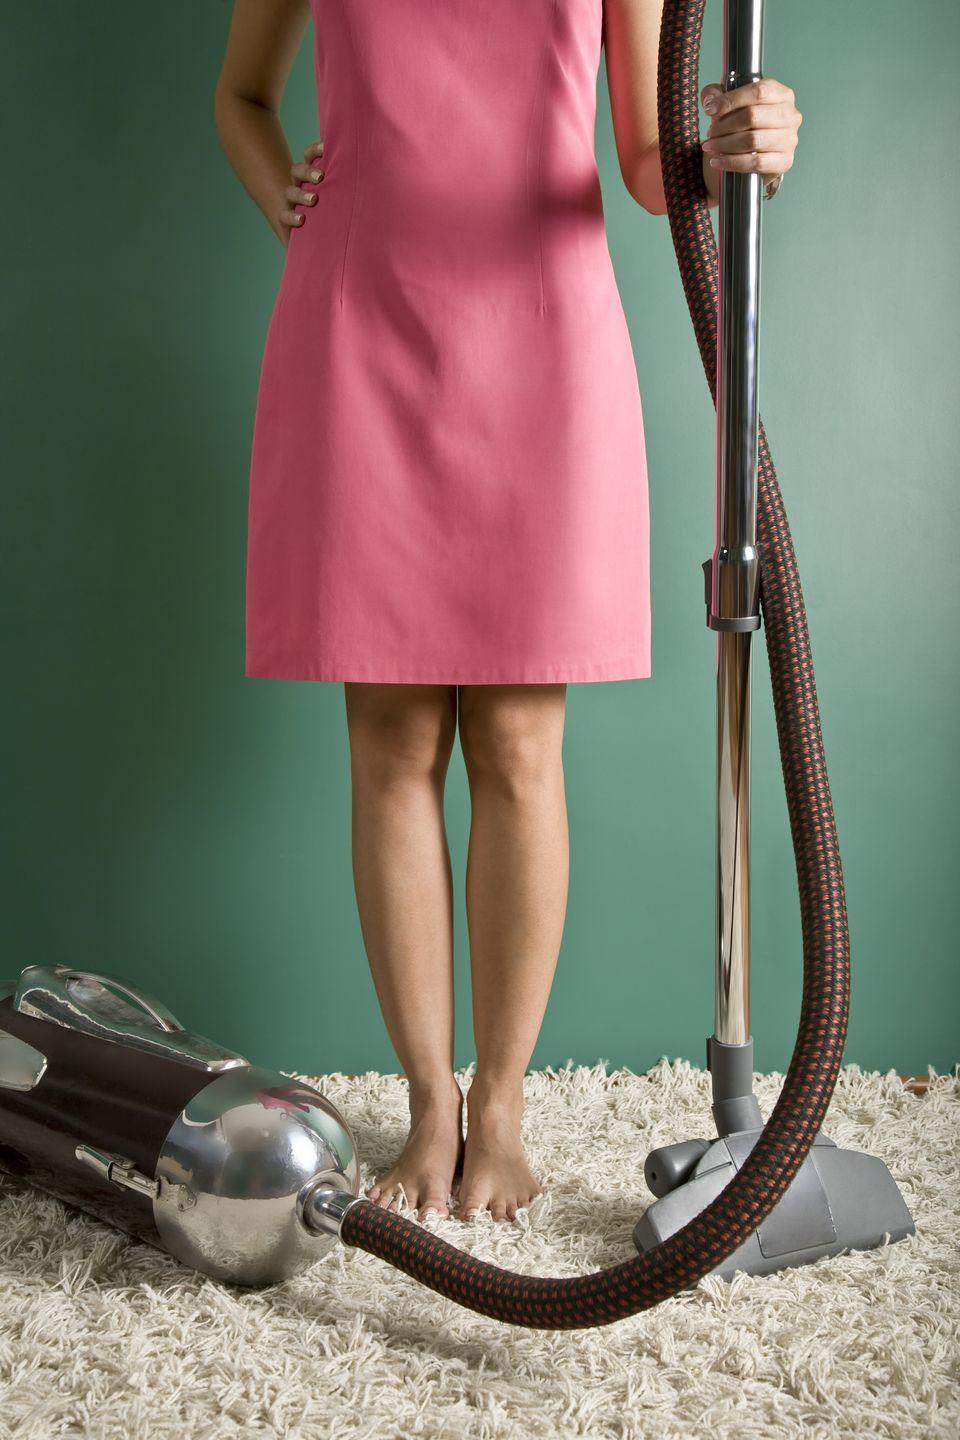 "<p>Who would have thought that old sweeper sitting forgotten in the corner of your basement could be worth something? Depending on the make and model, it could bring in the money. The proudly pink Hoover 738 from the 60s, for example, is selling for $499 on <a href=""https://go.redirectingat.com?id=74968X1596630&url=https%3A%2F%2Fwww.ebay.com%2Fitm%2Fgroovy-Vintage-Mid-Century-60s-Model-728-Hoover-Convertible-Vacuum-Cleaner%2F293243147382%3Fhash%3Ditem4446a75476%253Ag%253AOWUAAOSwPu9dd9RG&sref=https%3A%2F%2Fwww.redbookmag.com%2Fhome%2Fg35417357%2Fvaluable-antiques-basement%2F"" rel=""nofollow noopener"" target=""_blank"" data-ylk=""slk:eBay"" class=""link rapid-noclick-resp"">eBay</a>.</p>"